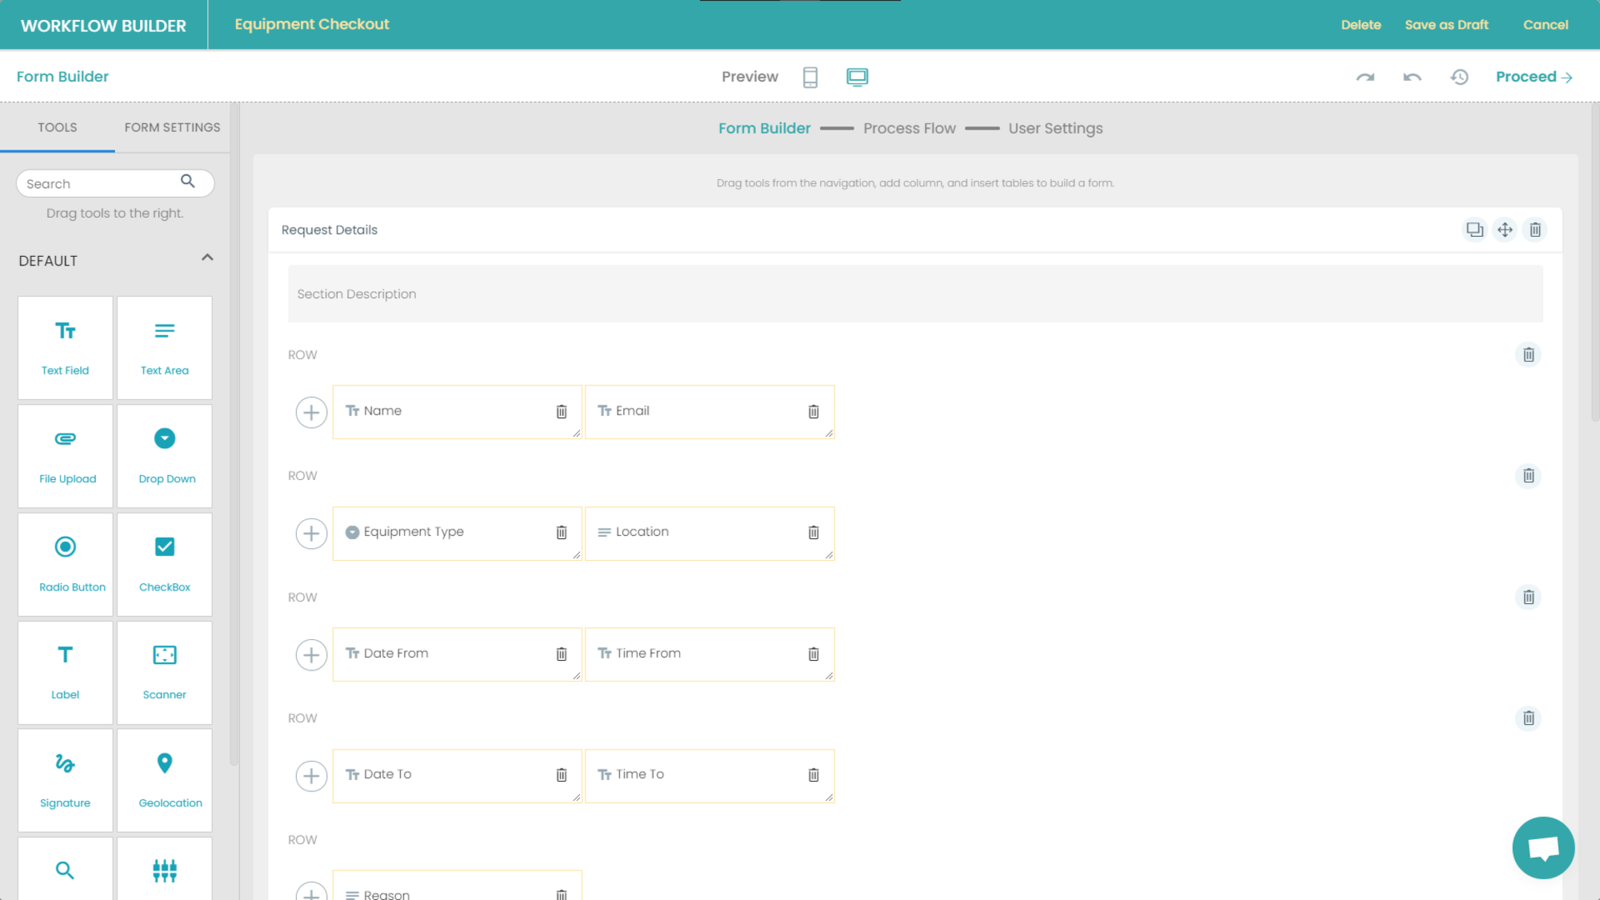 Fig. 3: Equipment Checkout Form Builder preview